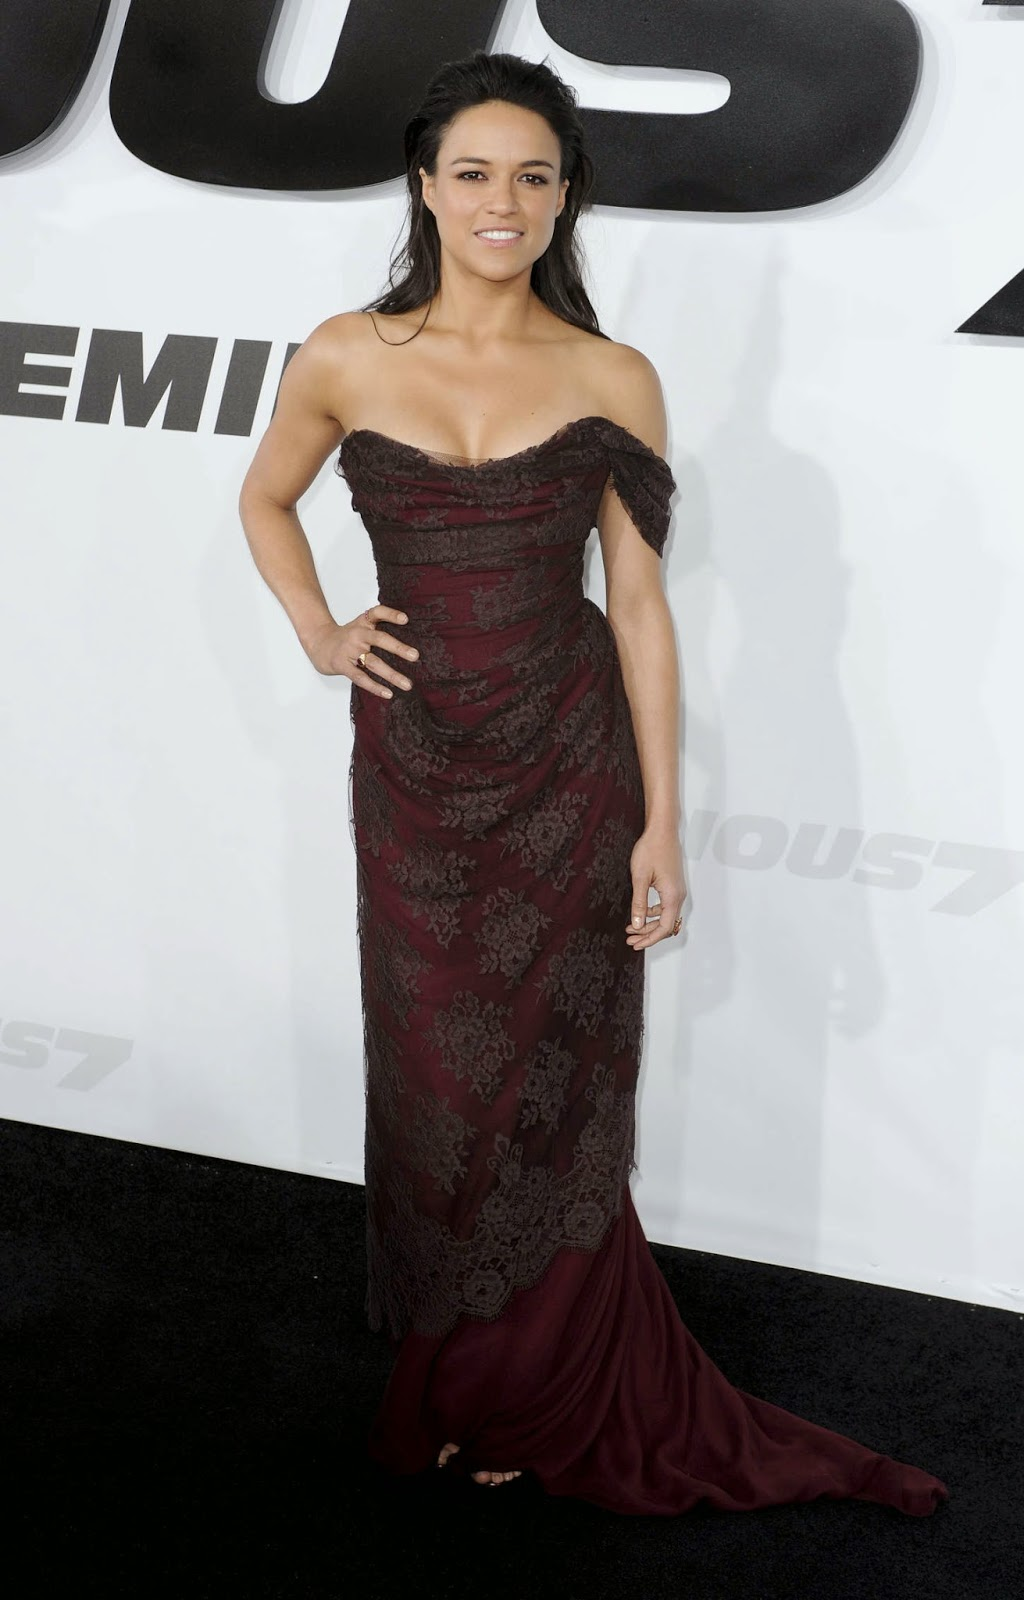 Michelle Rodriguez in an off shoulder dress at the 'Furious 7' premiere in LA